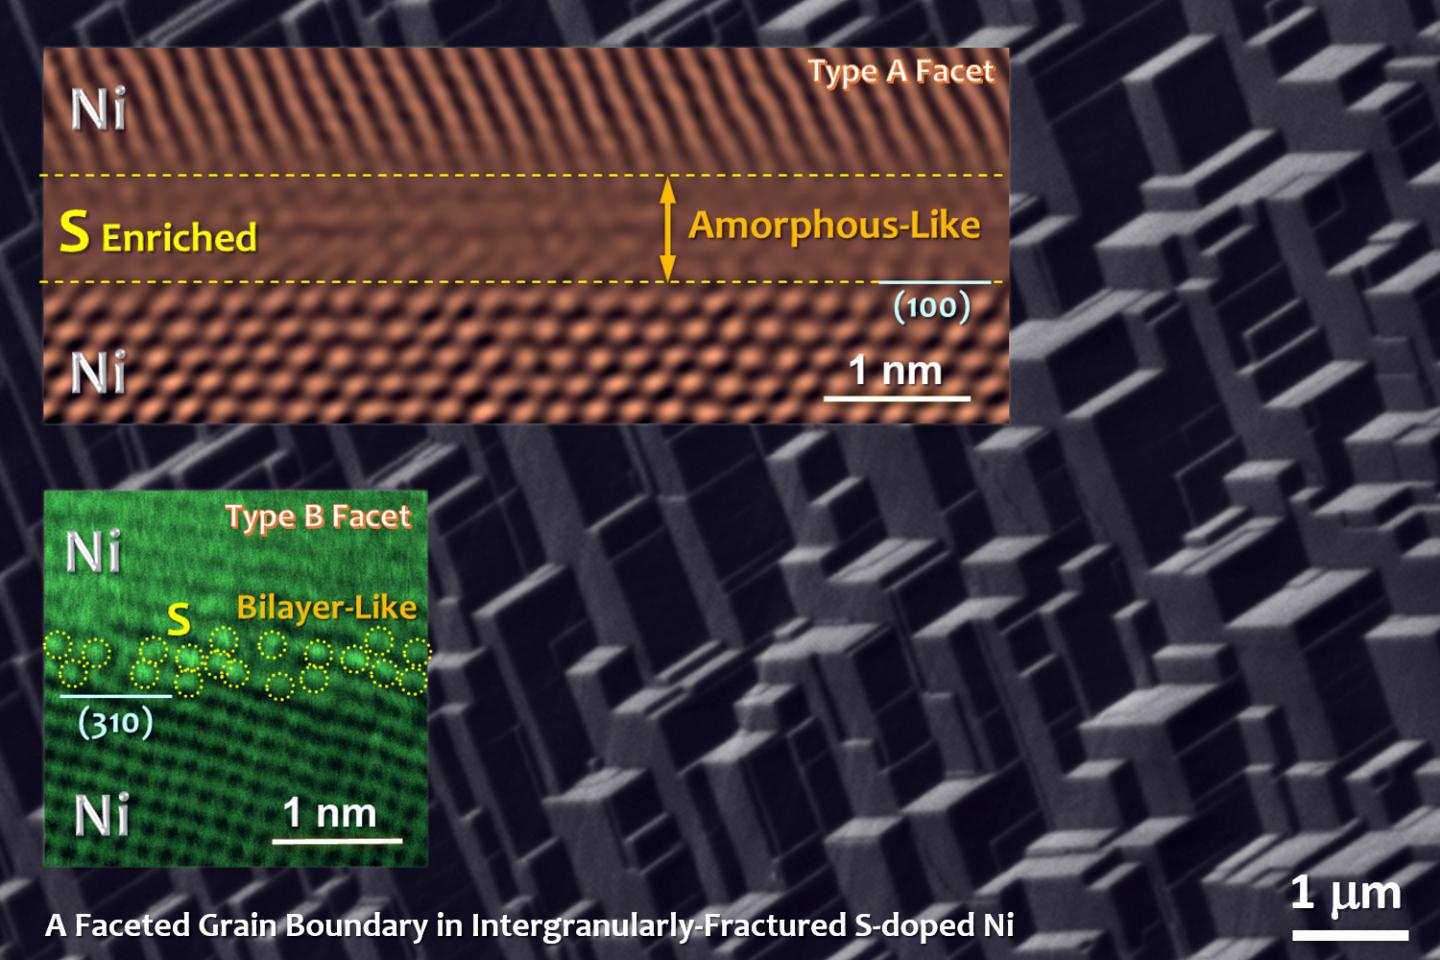 Faceted Grain Boundary in Intergranularly-Fractured S-Doped Ni